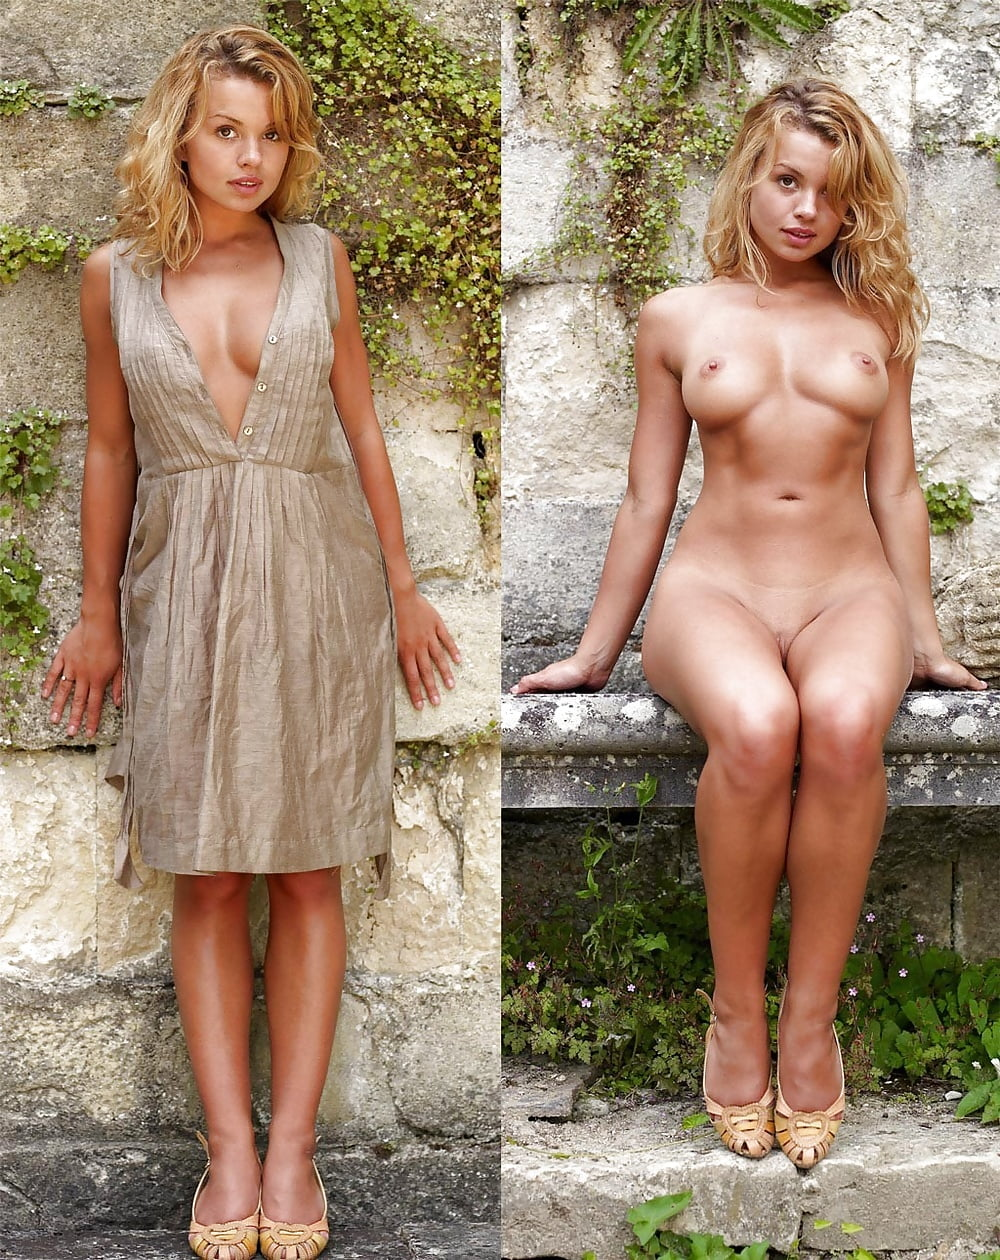 off-the-grid-women-nude